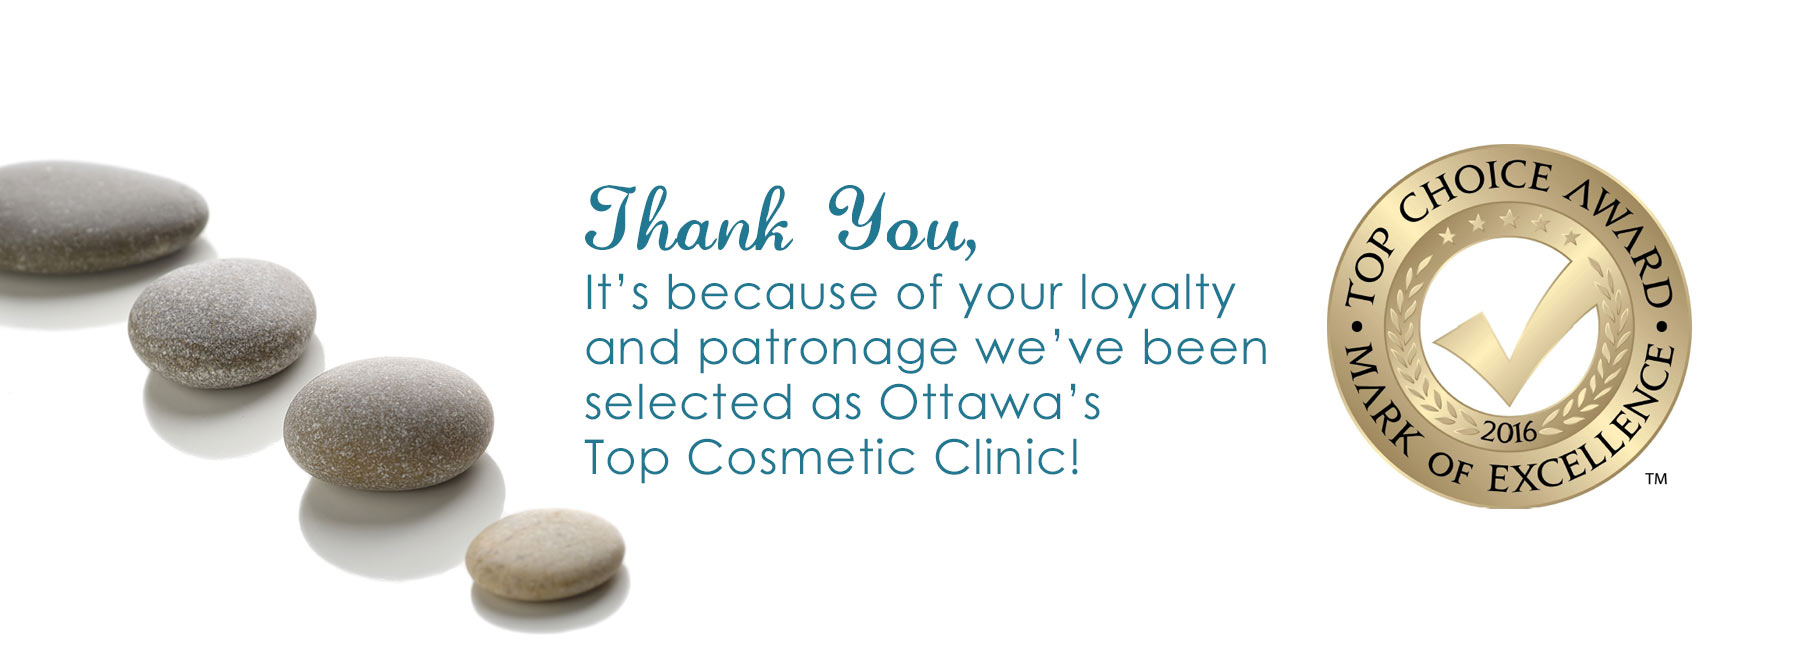 Thank-you for voting us. We have won the top choice award for top cosmetic clinic in Ottawa!